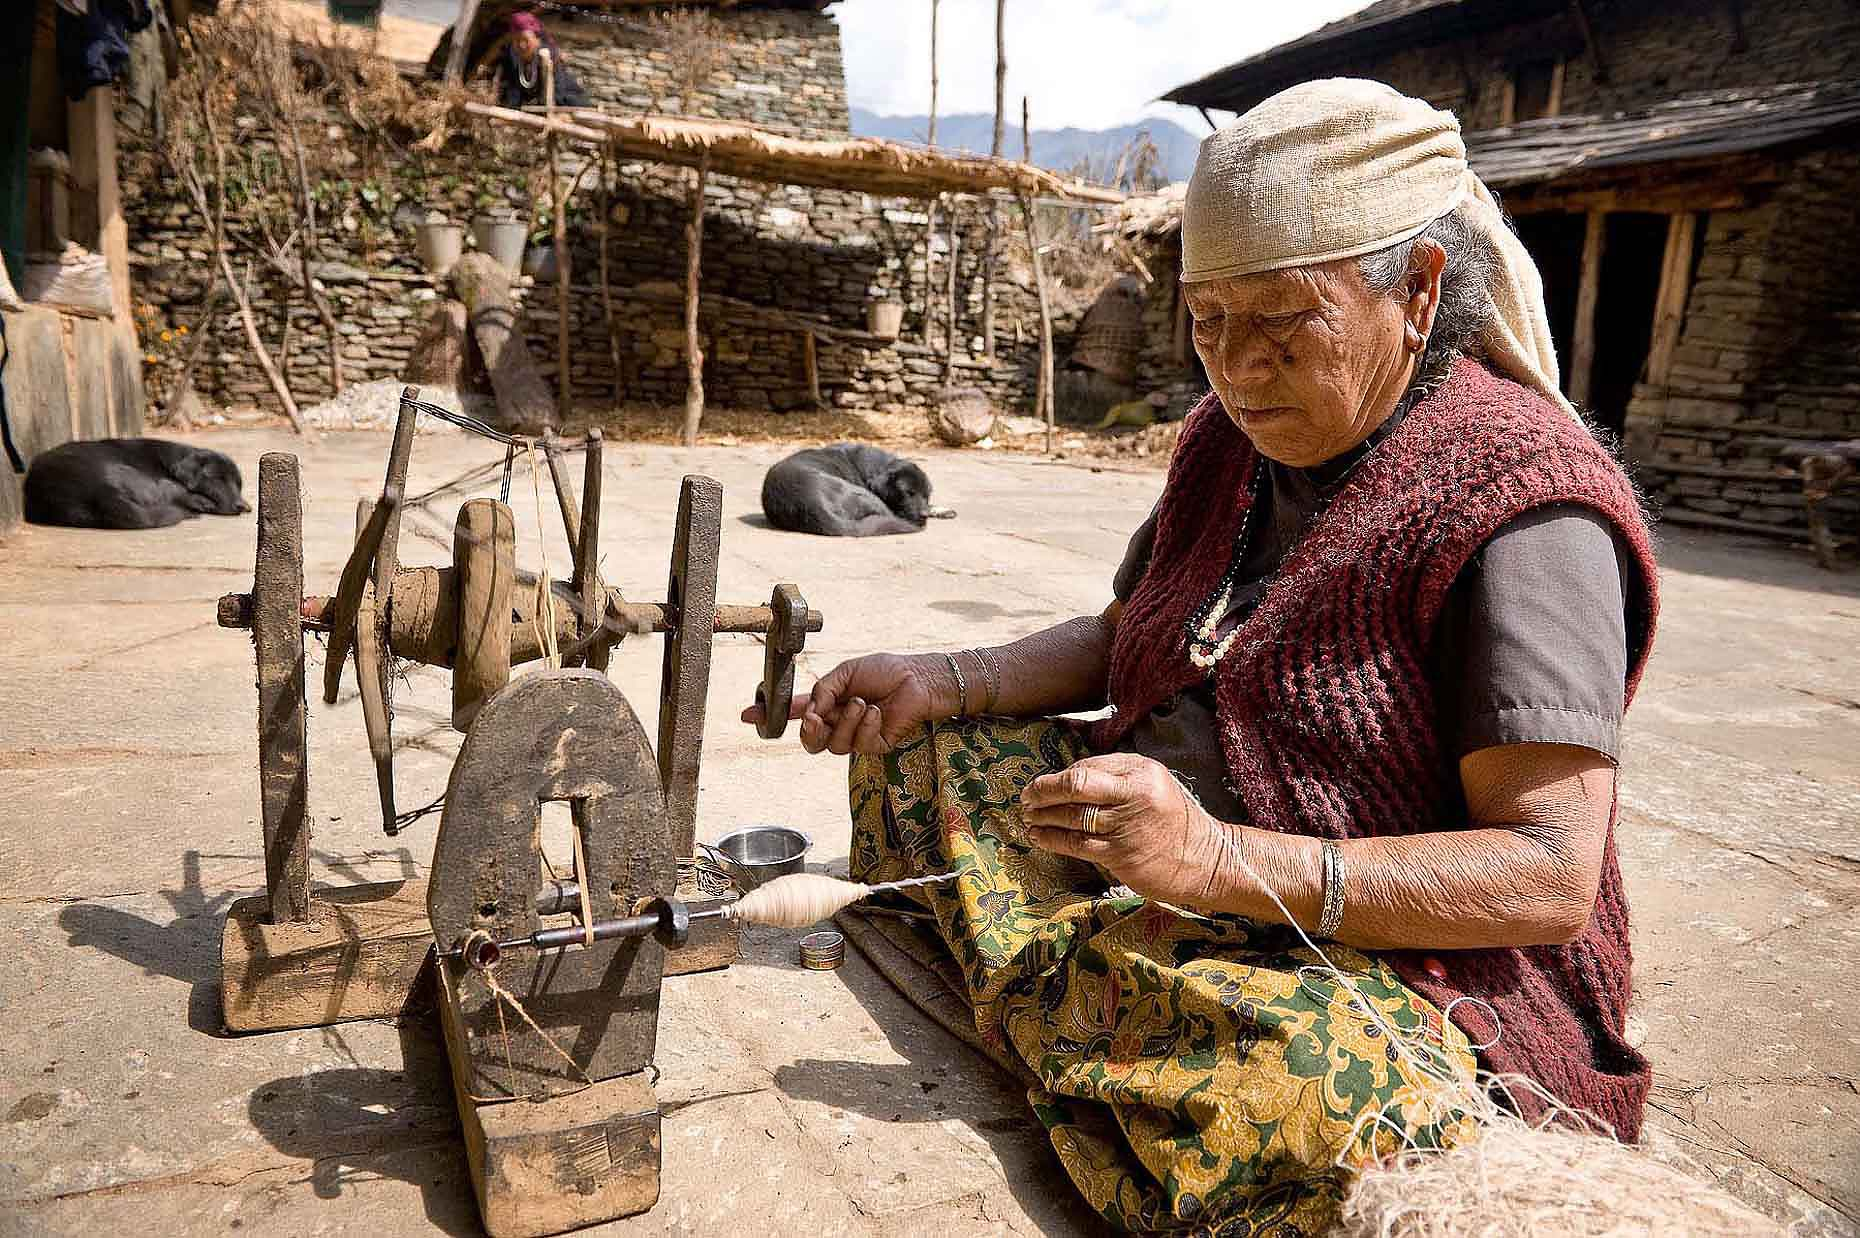 sewing-machine-traditional-rural-ghandruk-annapurna-nepal-27